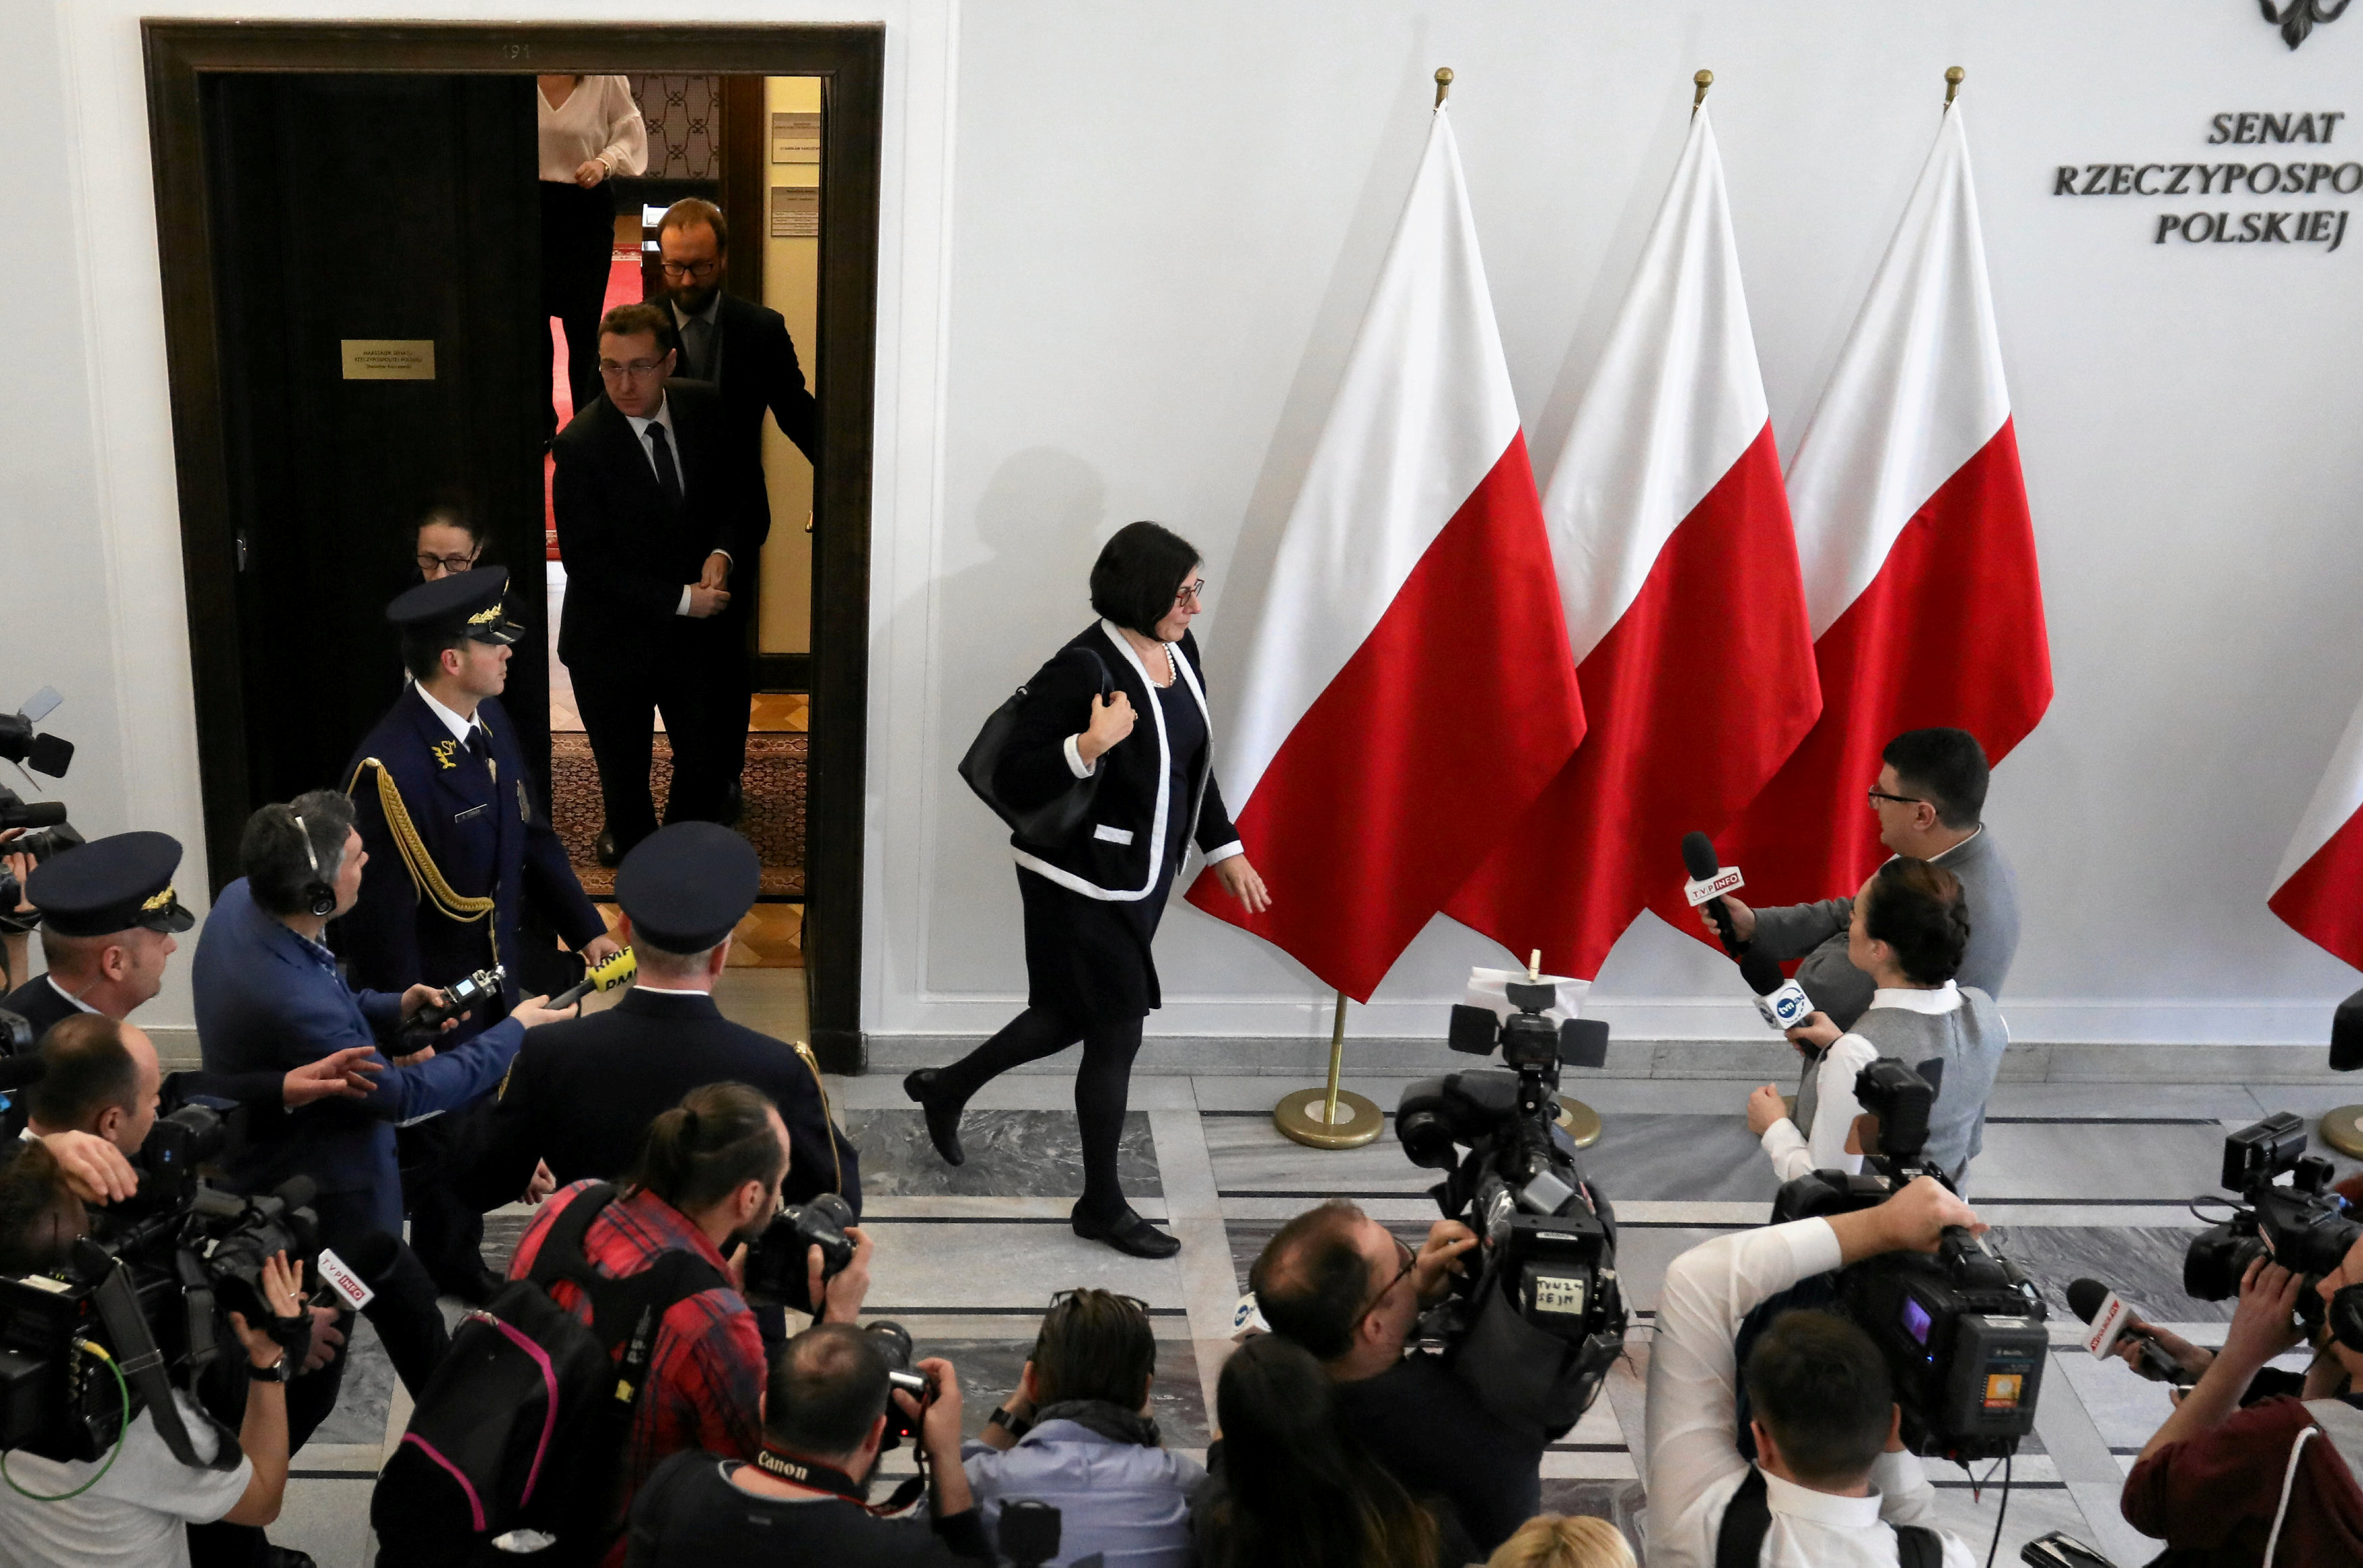 Israel's Ambassador to Poland, Anna Azari, is seen after a meeting with Poland's Senate Marshal Stanislaw Karczewski, in Warsaw, Poland January 31, 2018.